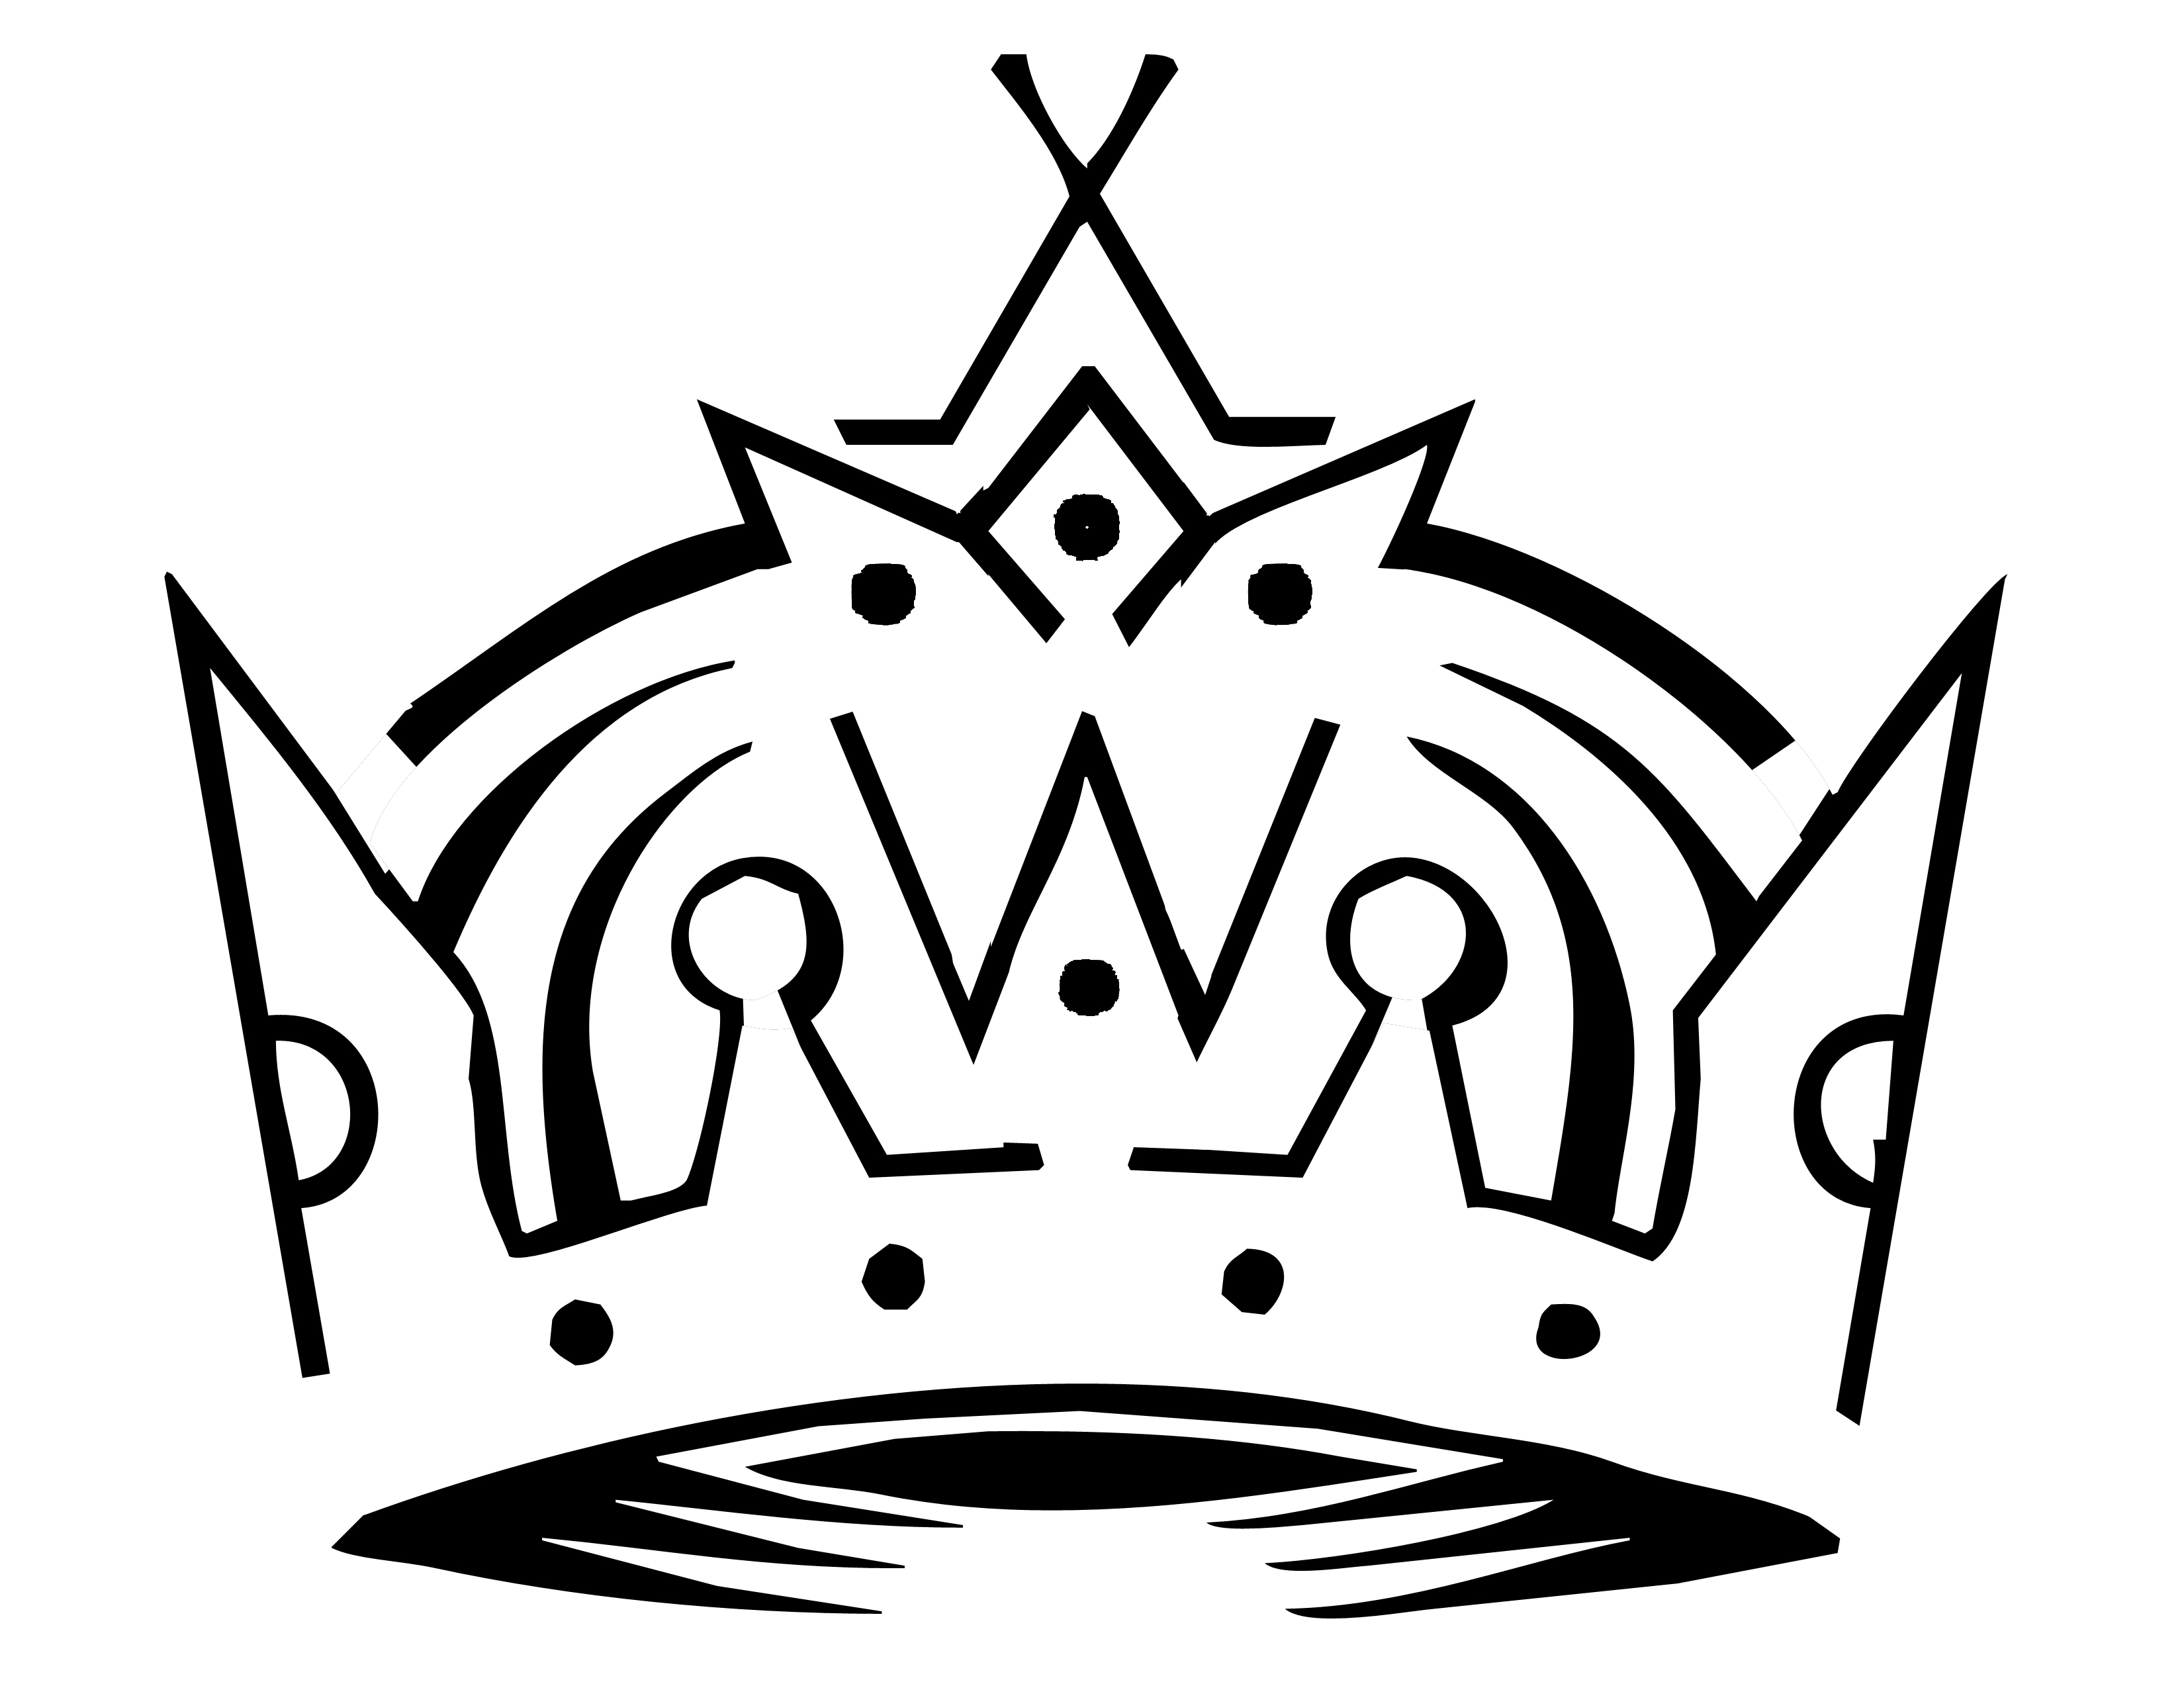 Easy Princess Crown Drawing at GetDrawings.com | Free for personal ...